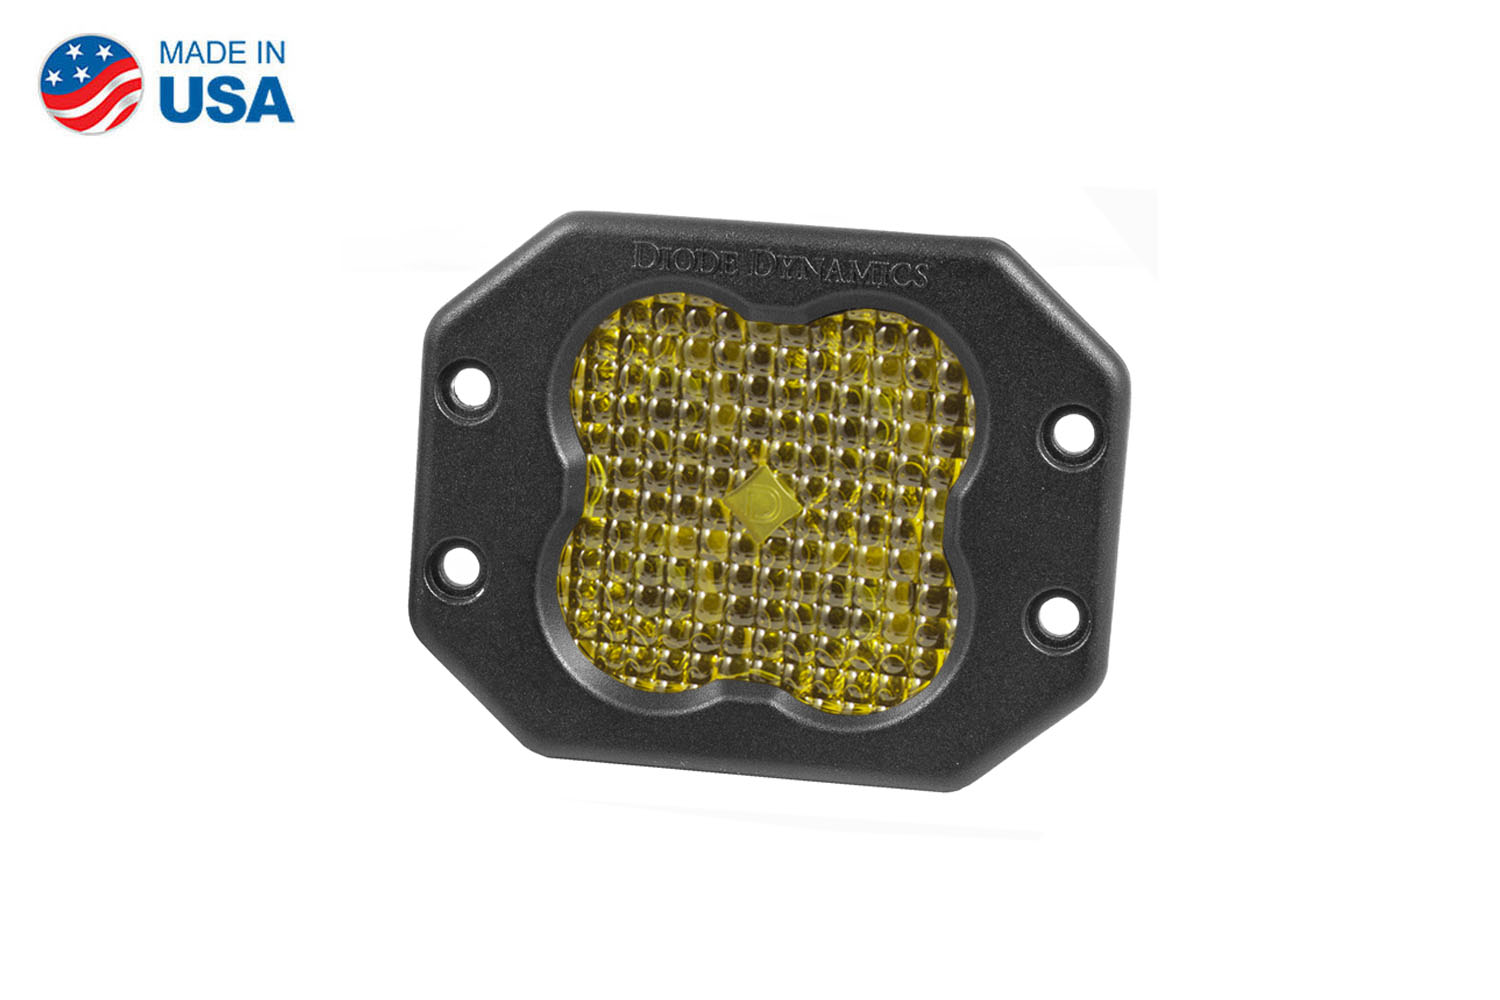 Diode Dynamics Worklight SS3 Pro Yellow Flood Flush (single)